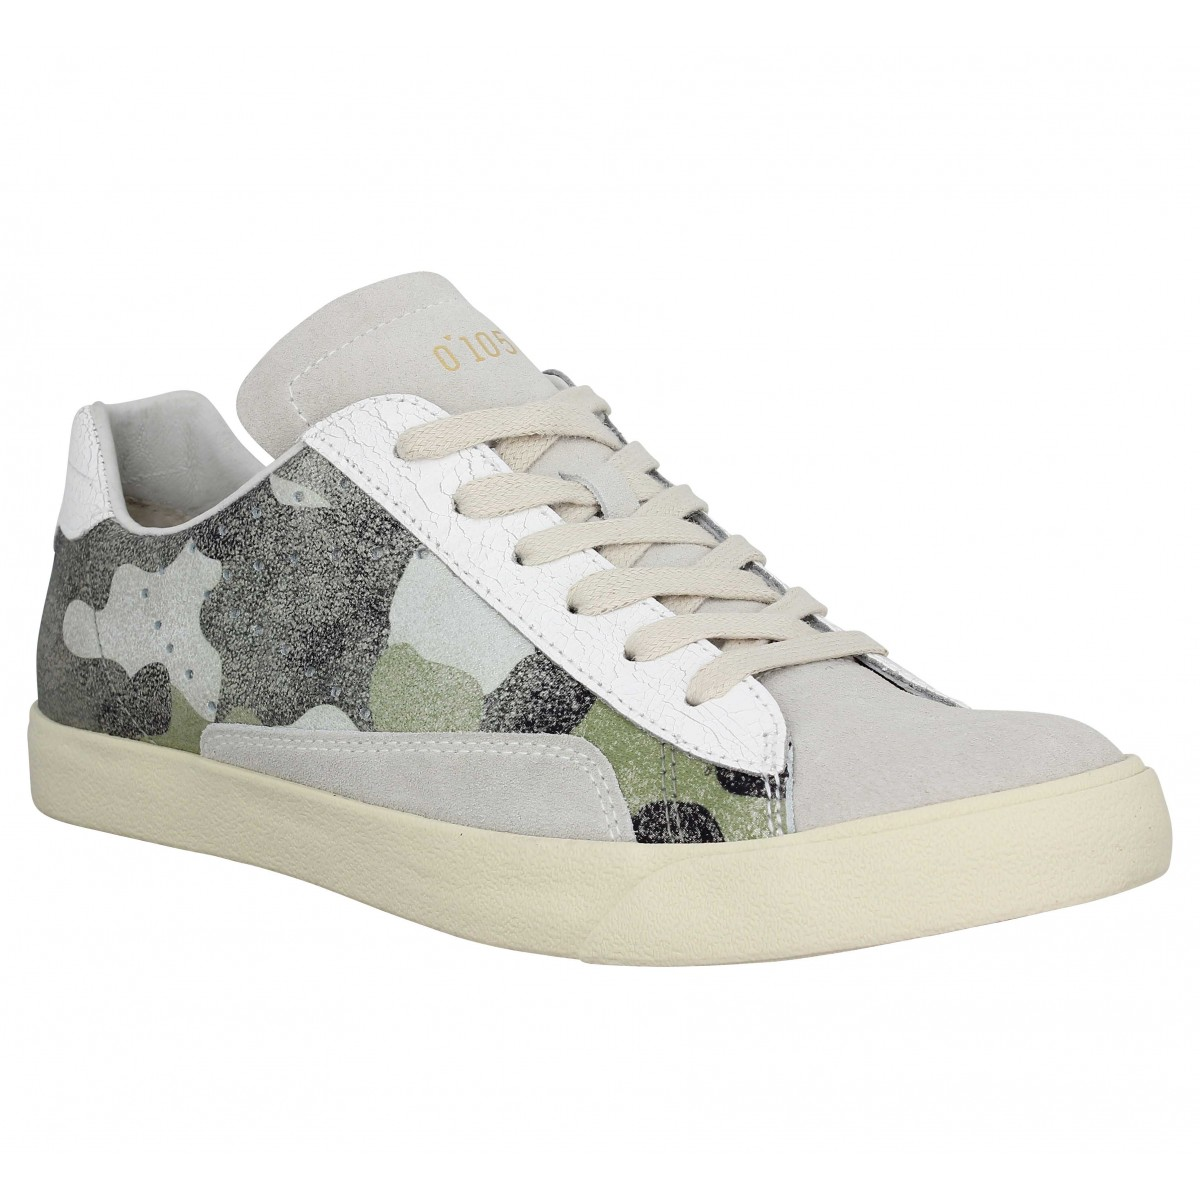 0 105 Stan Chris Cuir Femme Camo Femme | Fanny Chaussures Uoyqkdph-165459-2695245